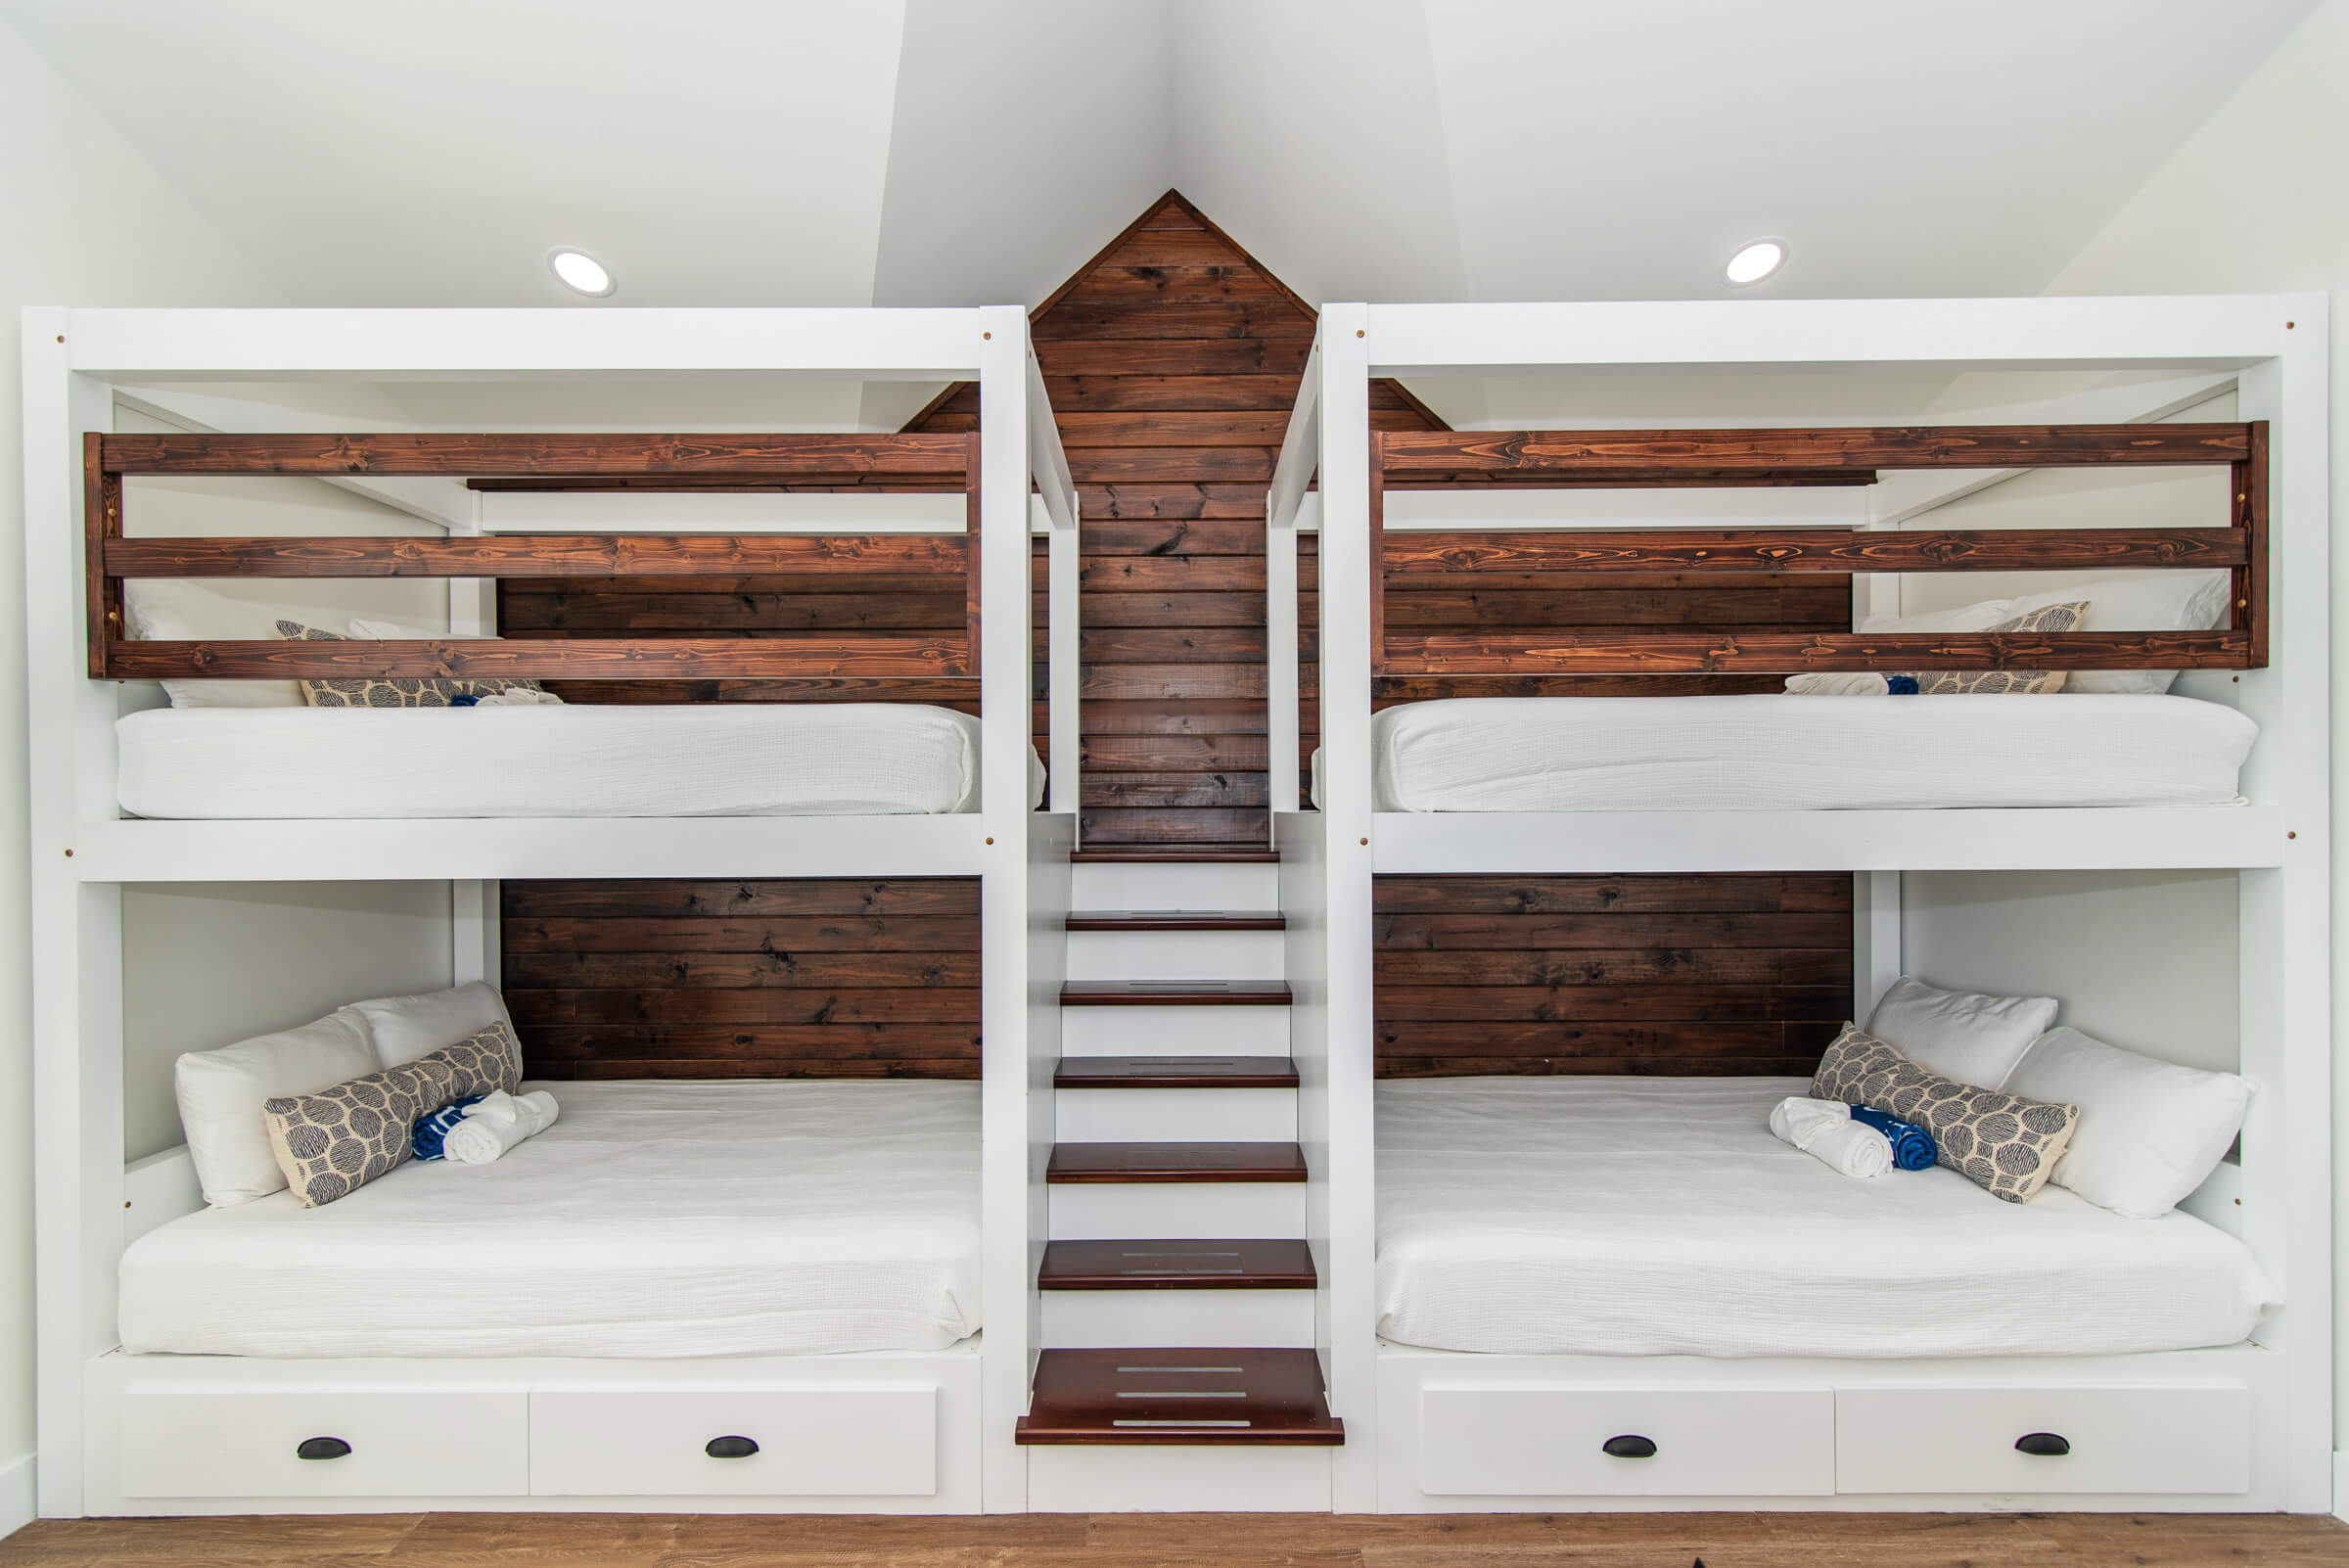 Seascape Villa Cayman Islands Grand Cayman Family Beachfront Luxury Caribbean Vacation Rental Large Master Bedrooms Kids Teens Room Bunk Beds and Bathrooms